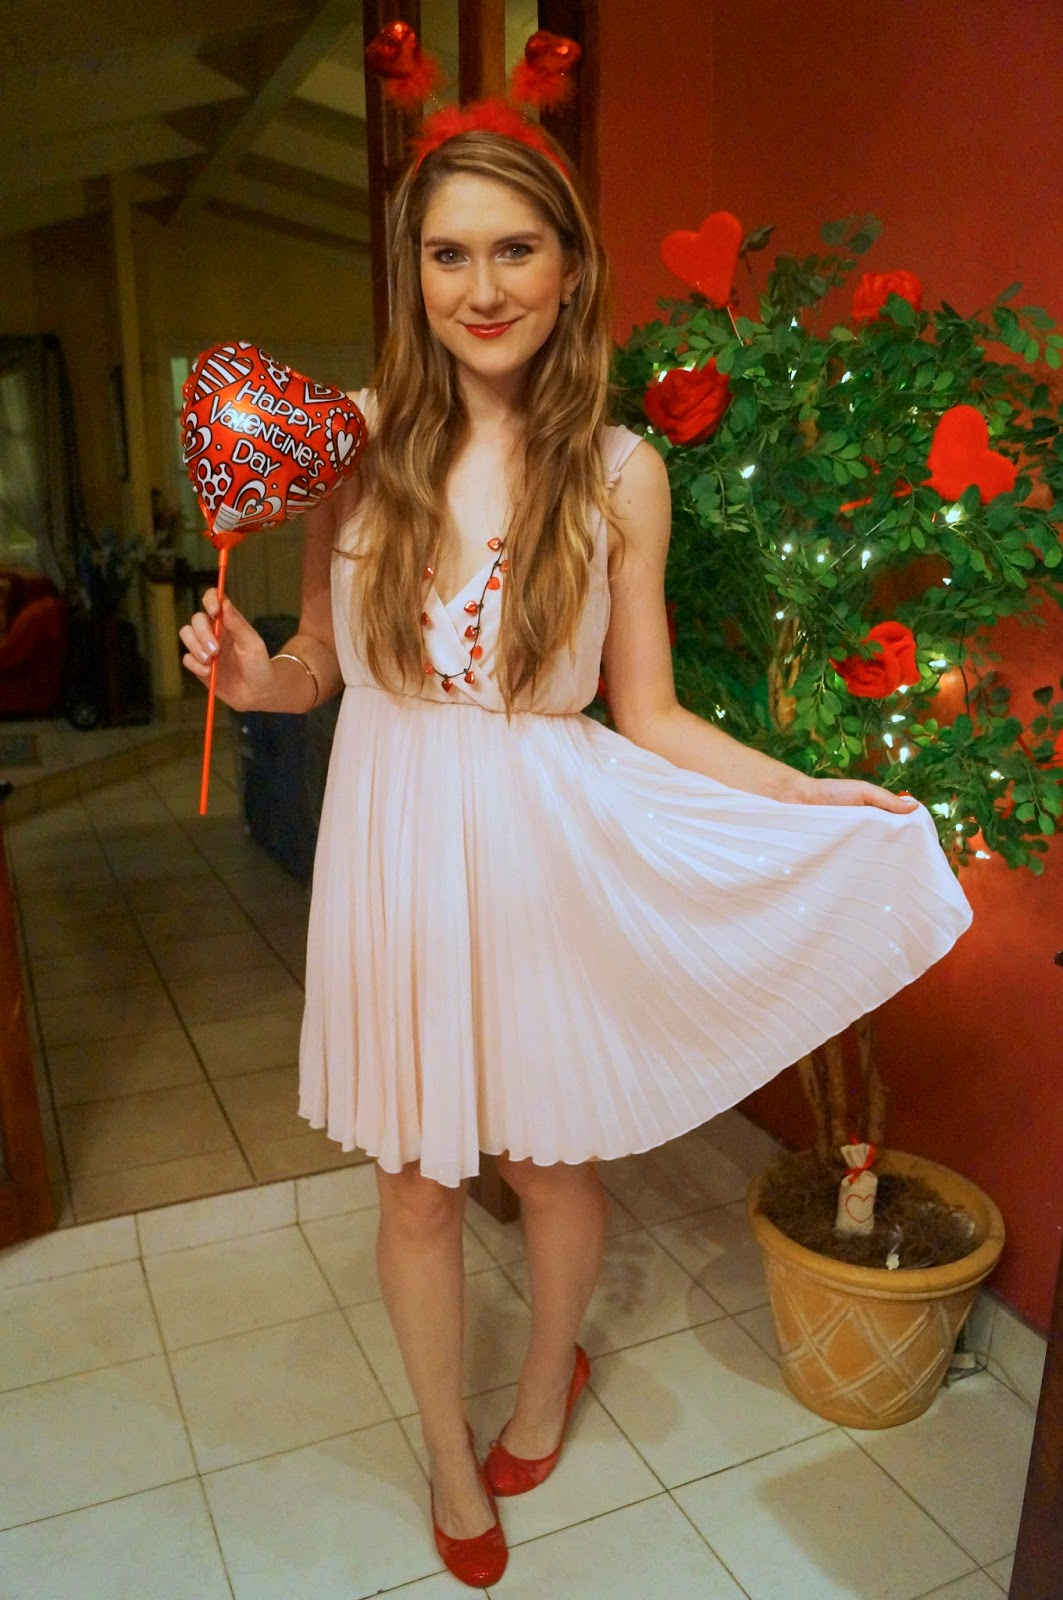 Pink and Red Outfit for Valentines Day!